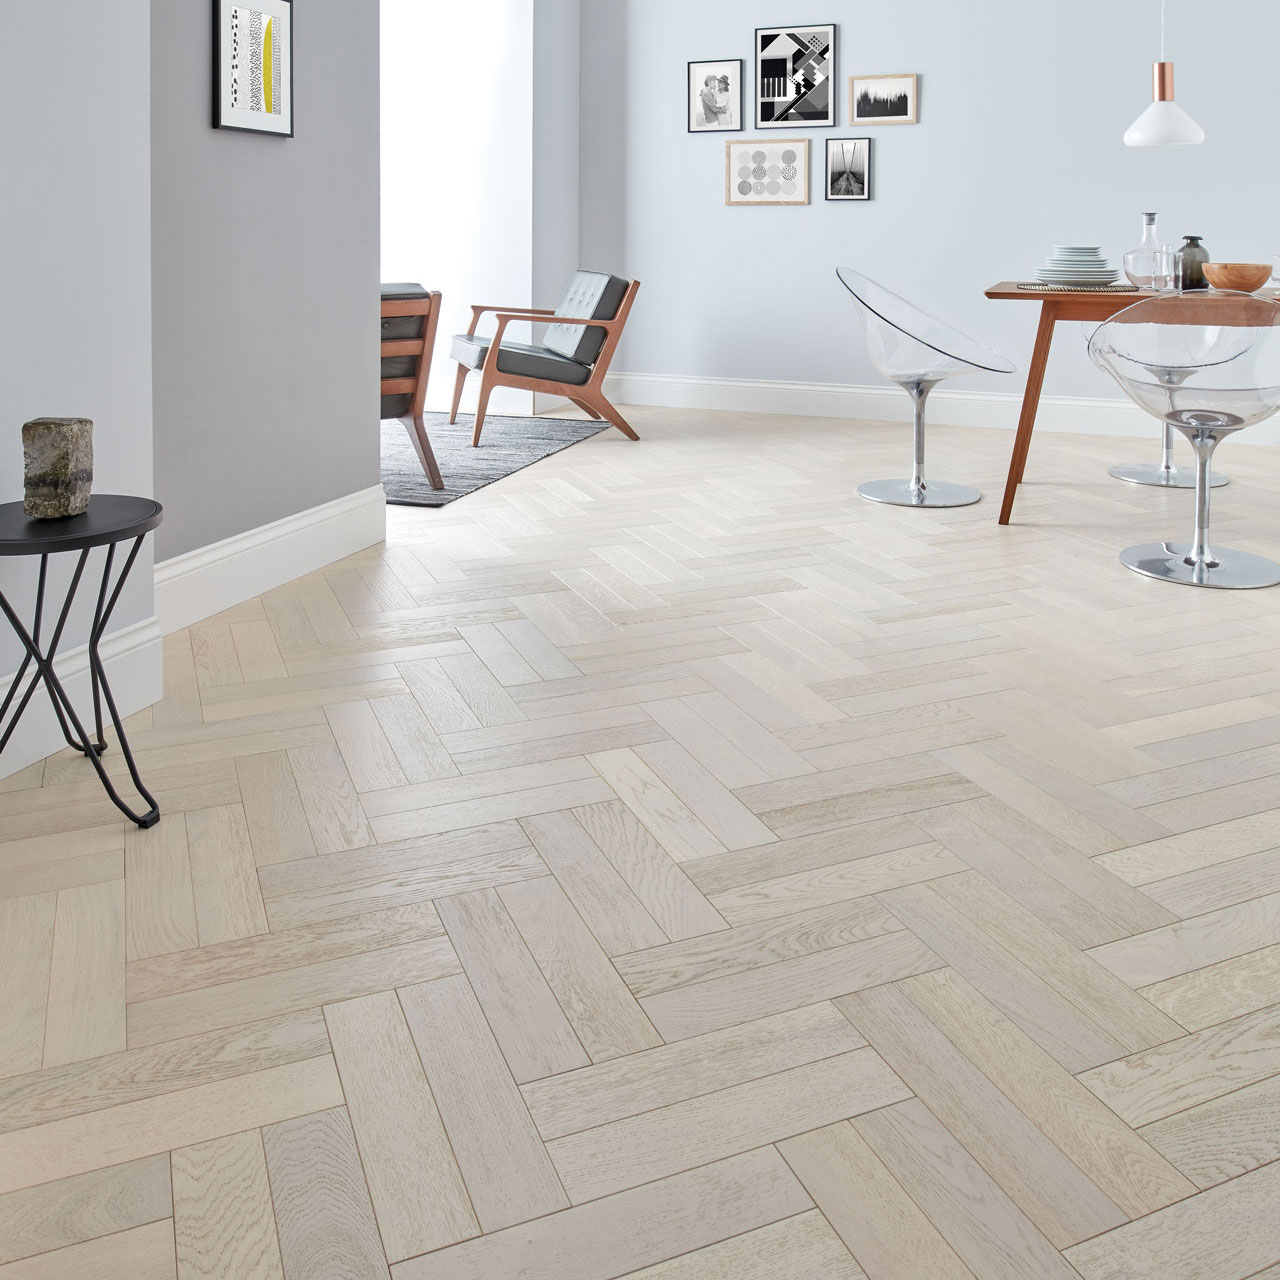 Vinyl Flooring- For a Masterpiece